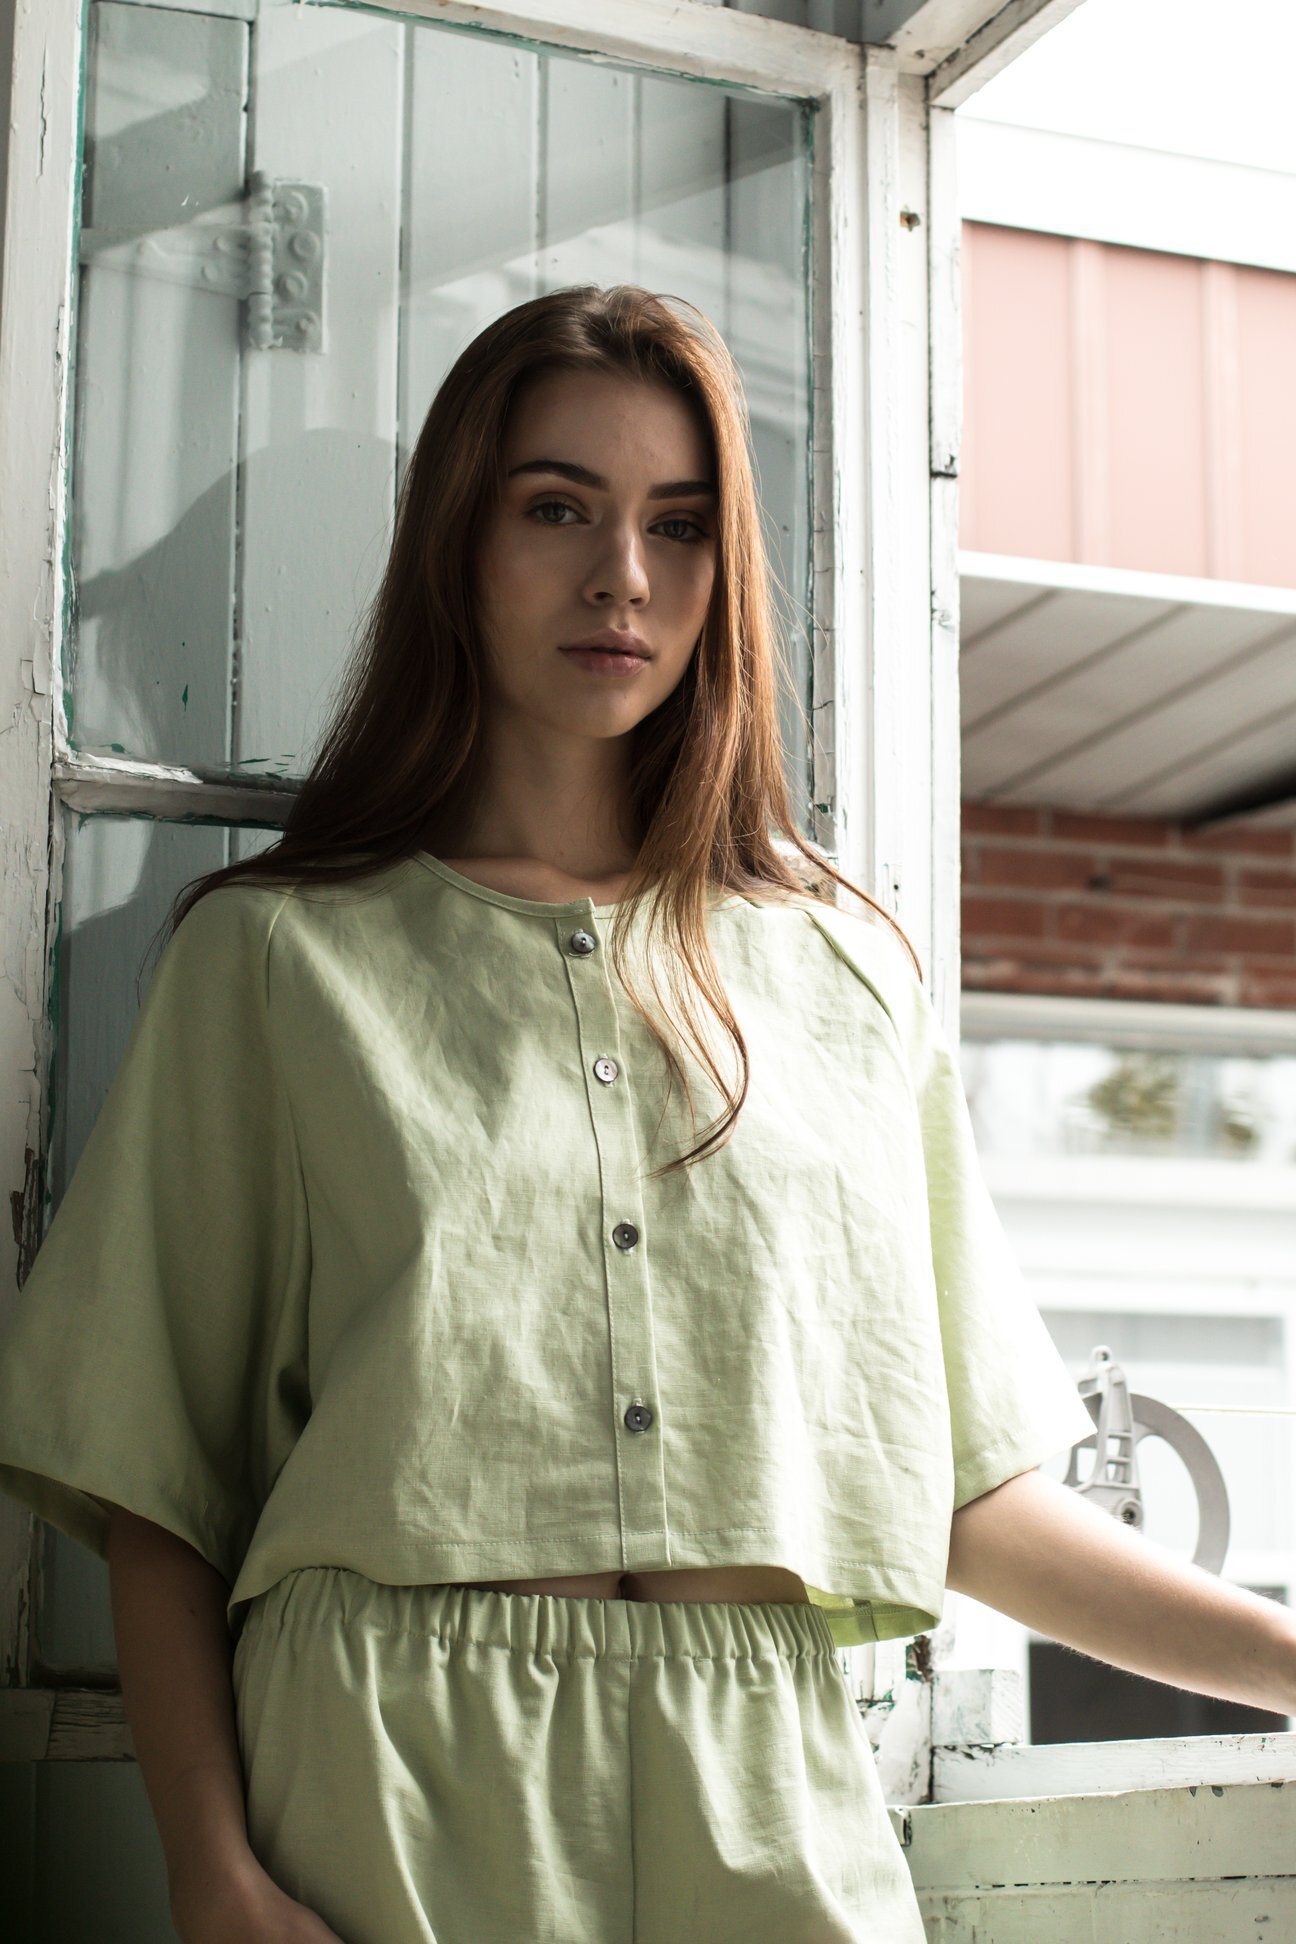 Aleur - Vesterbro Tee / $89This effortless top is so versatile you'll end up reaching for it all year long.